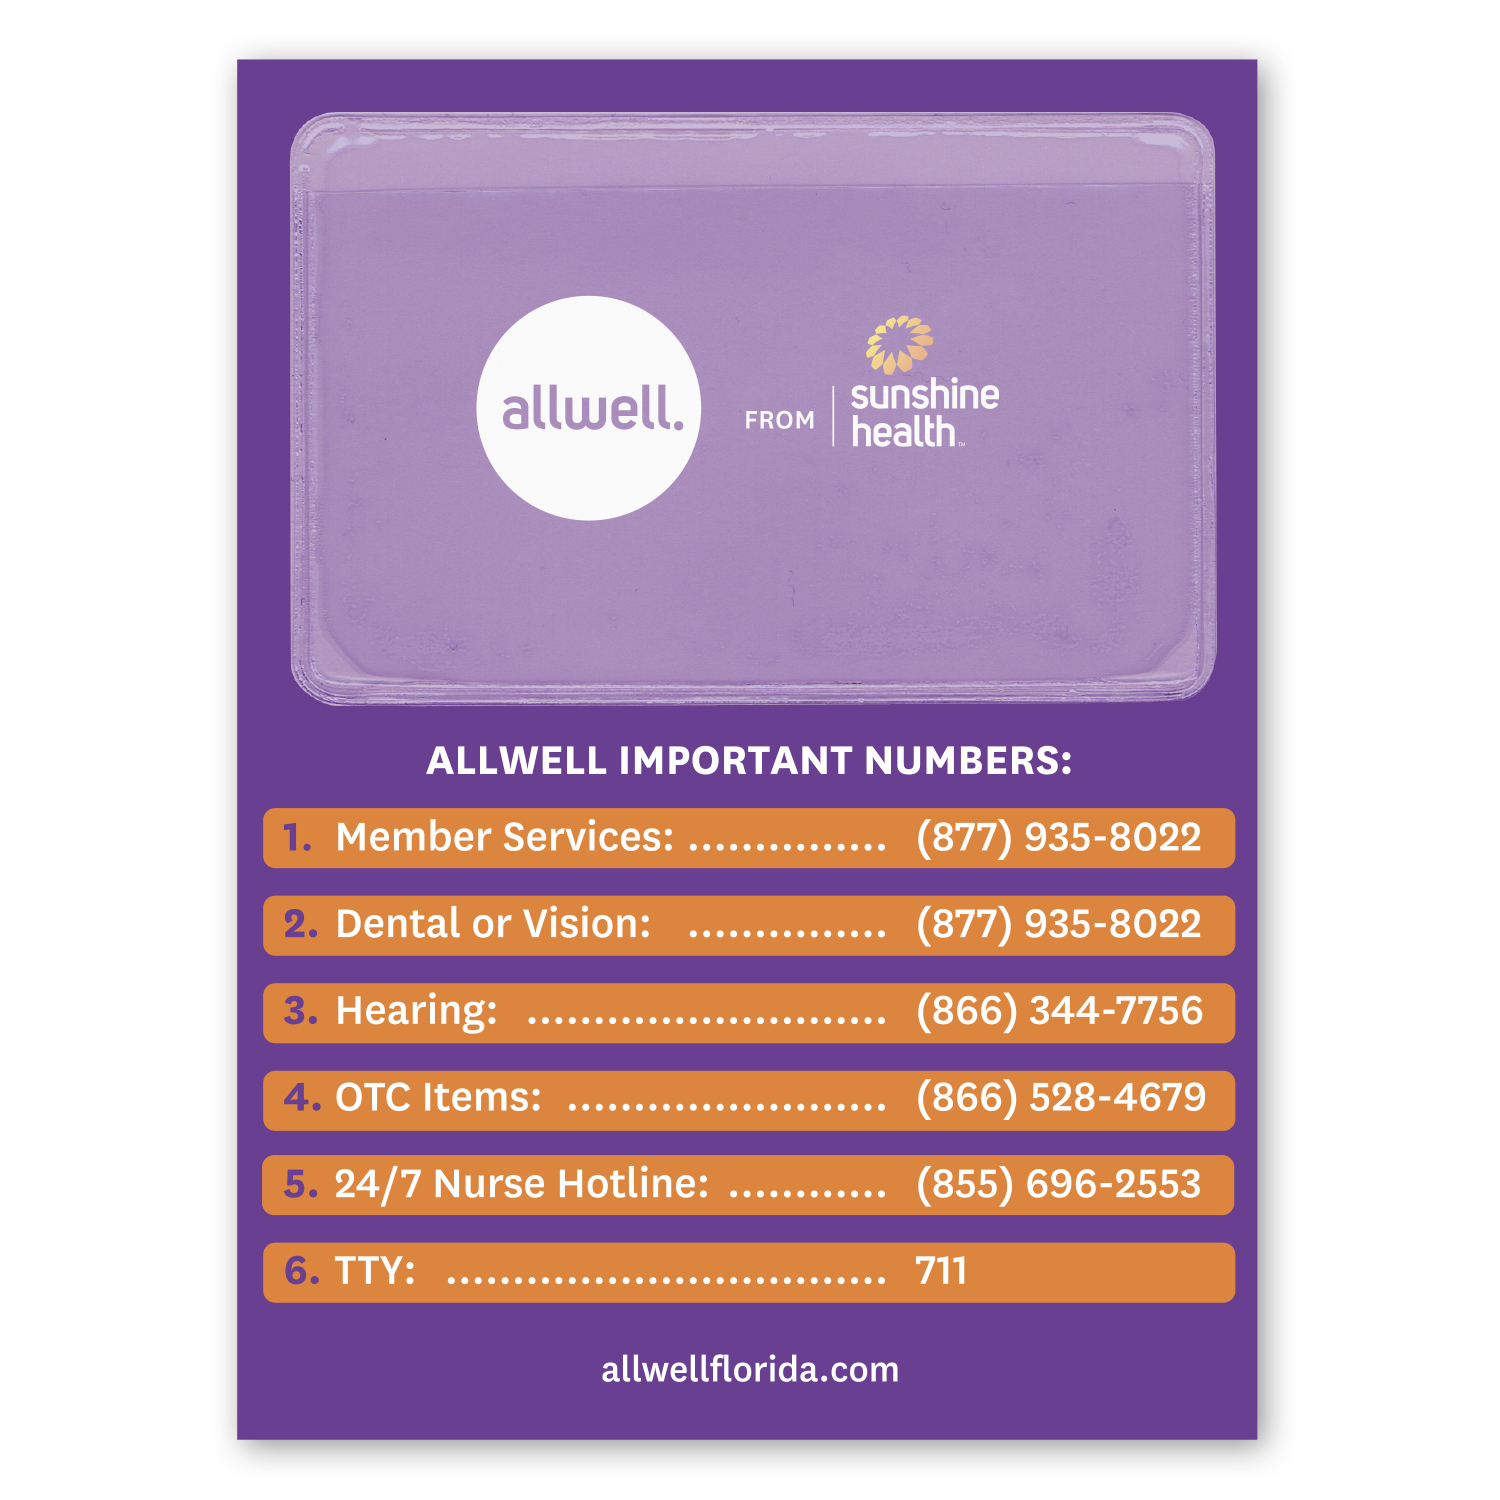 """• MP01 Pocket Magnet, 4.25"""" x 5.75"""", .020 thickness  • 5,000 piece order used for quick reference of different healthcare numbers. The pocket holds business card information of providers."""